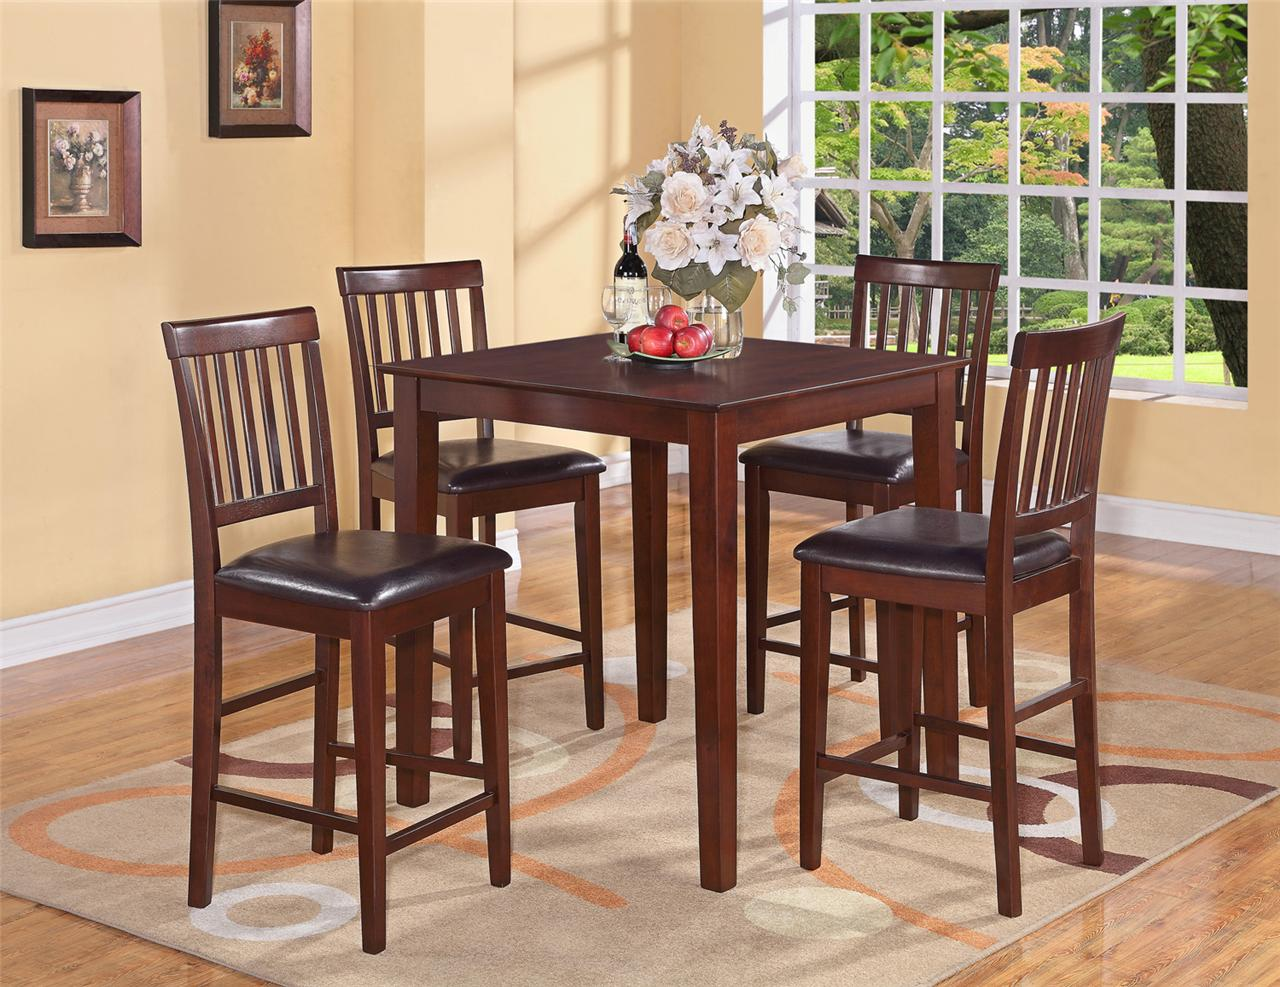 tall table and chairs swinging hammock chair 5pc vernon square counter height kitchen with 4